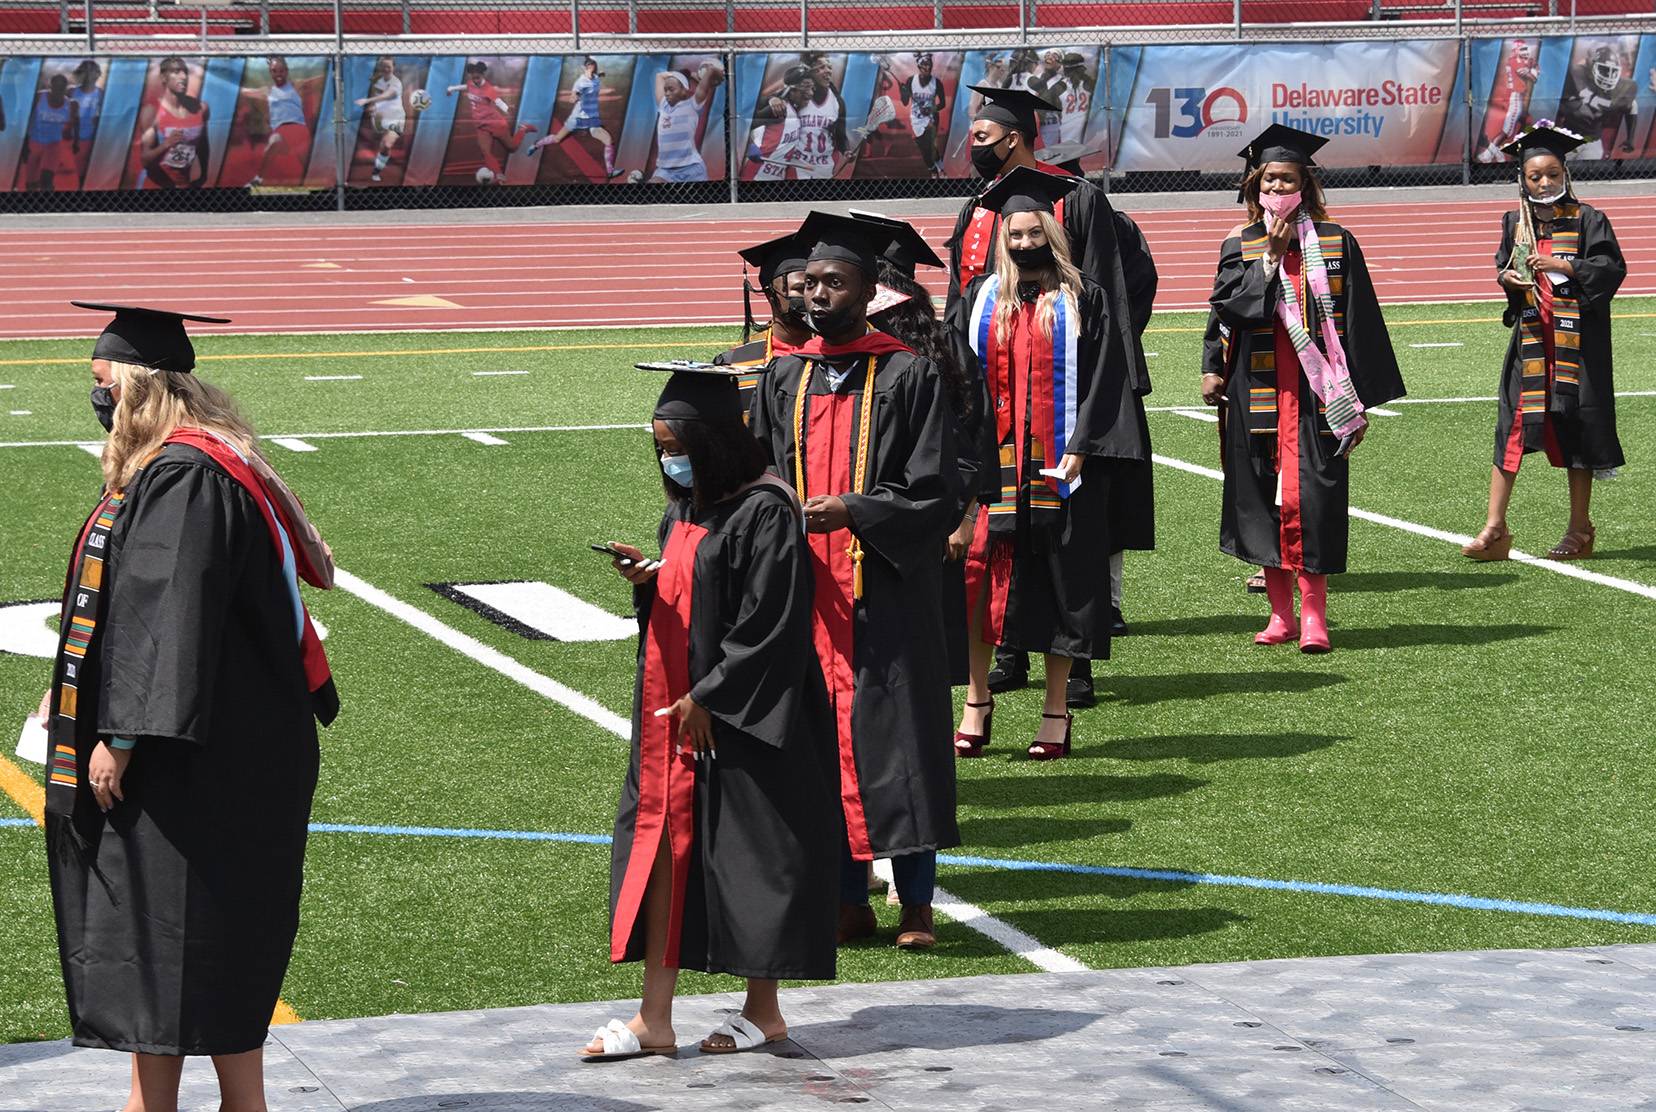 The University has provide financial assistance to more than 220 graduates who experienced financial hardship due to COVID-19. The financial assistance cancels their outstanding debt to the University, removing any delay in receiving their diplomas.